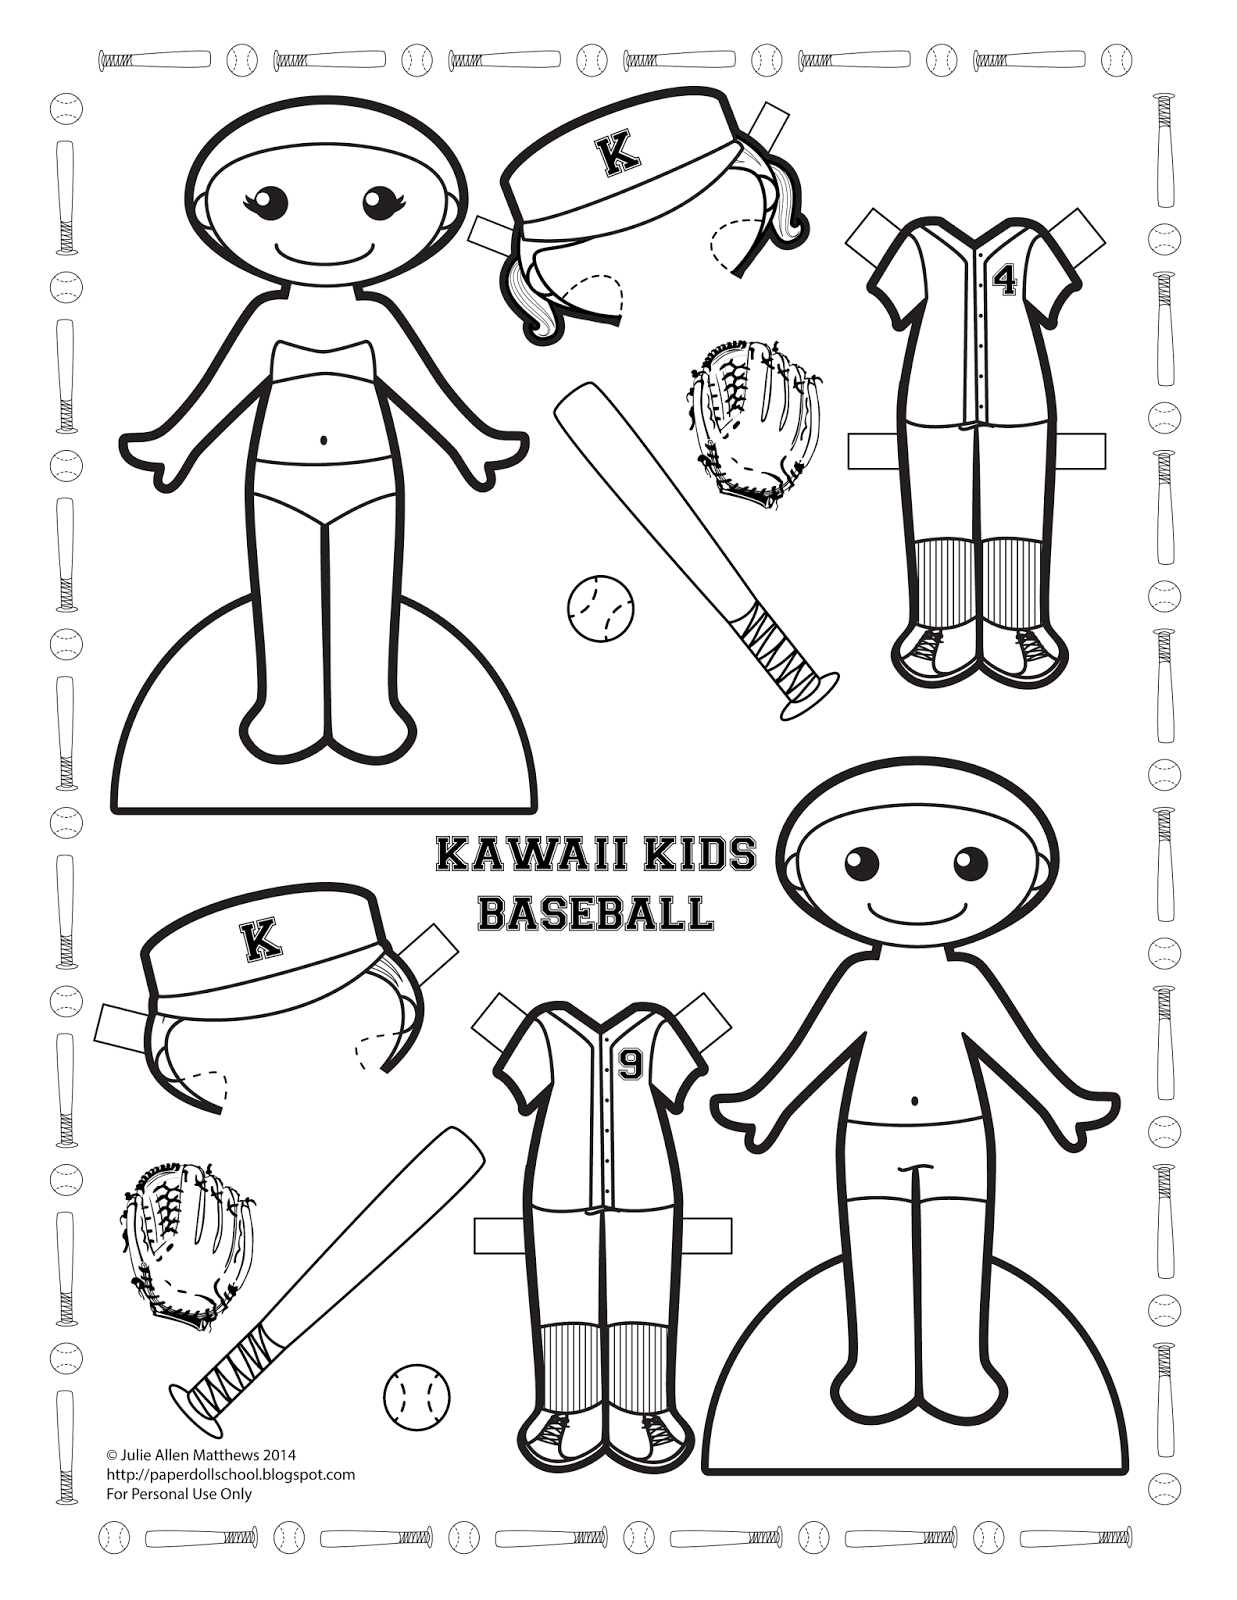 Kawaii Kids Baseball By Julie Matthews From Paper Doll